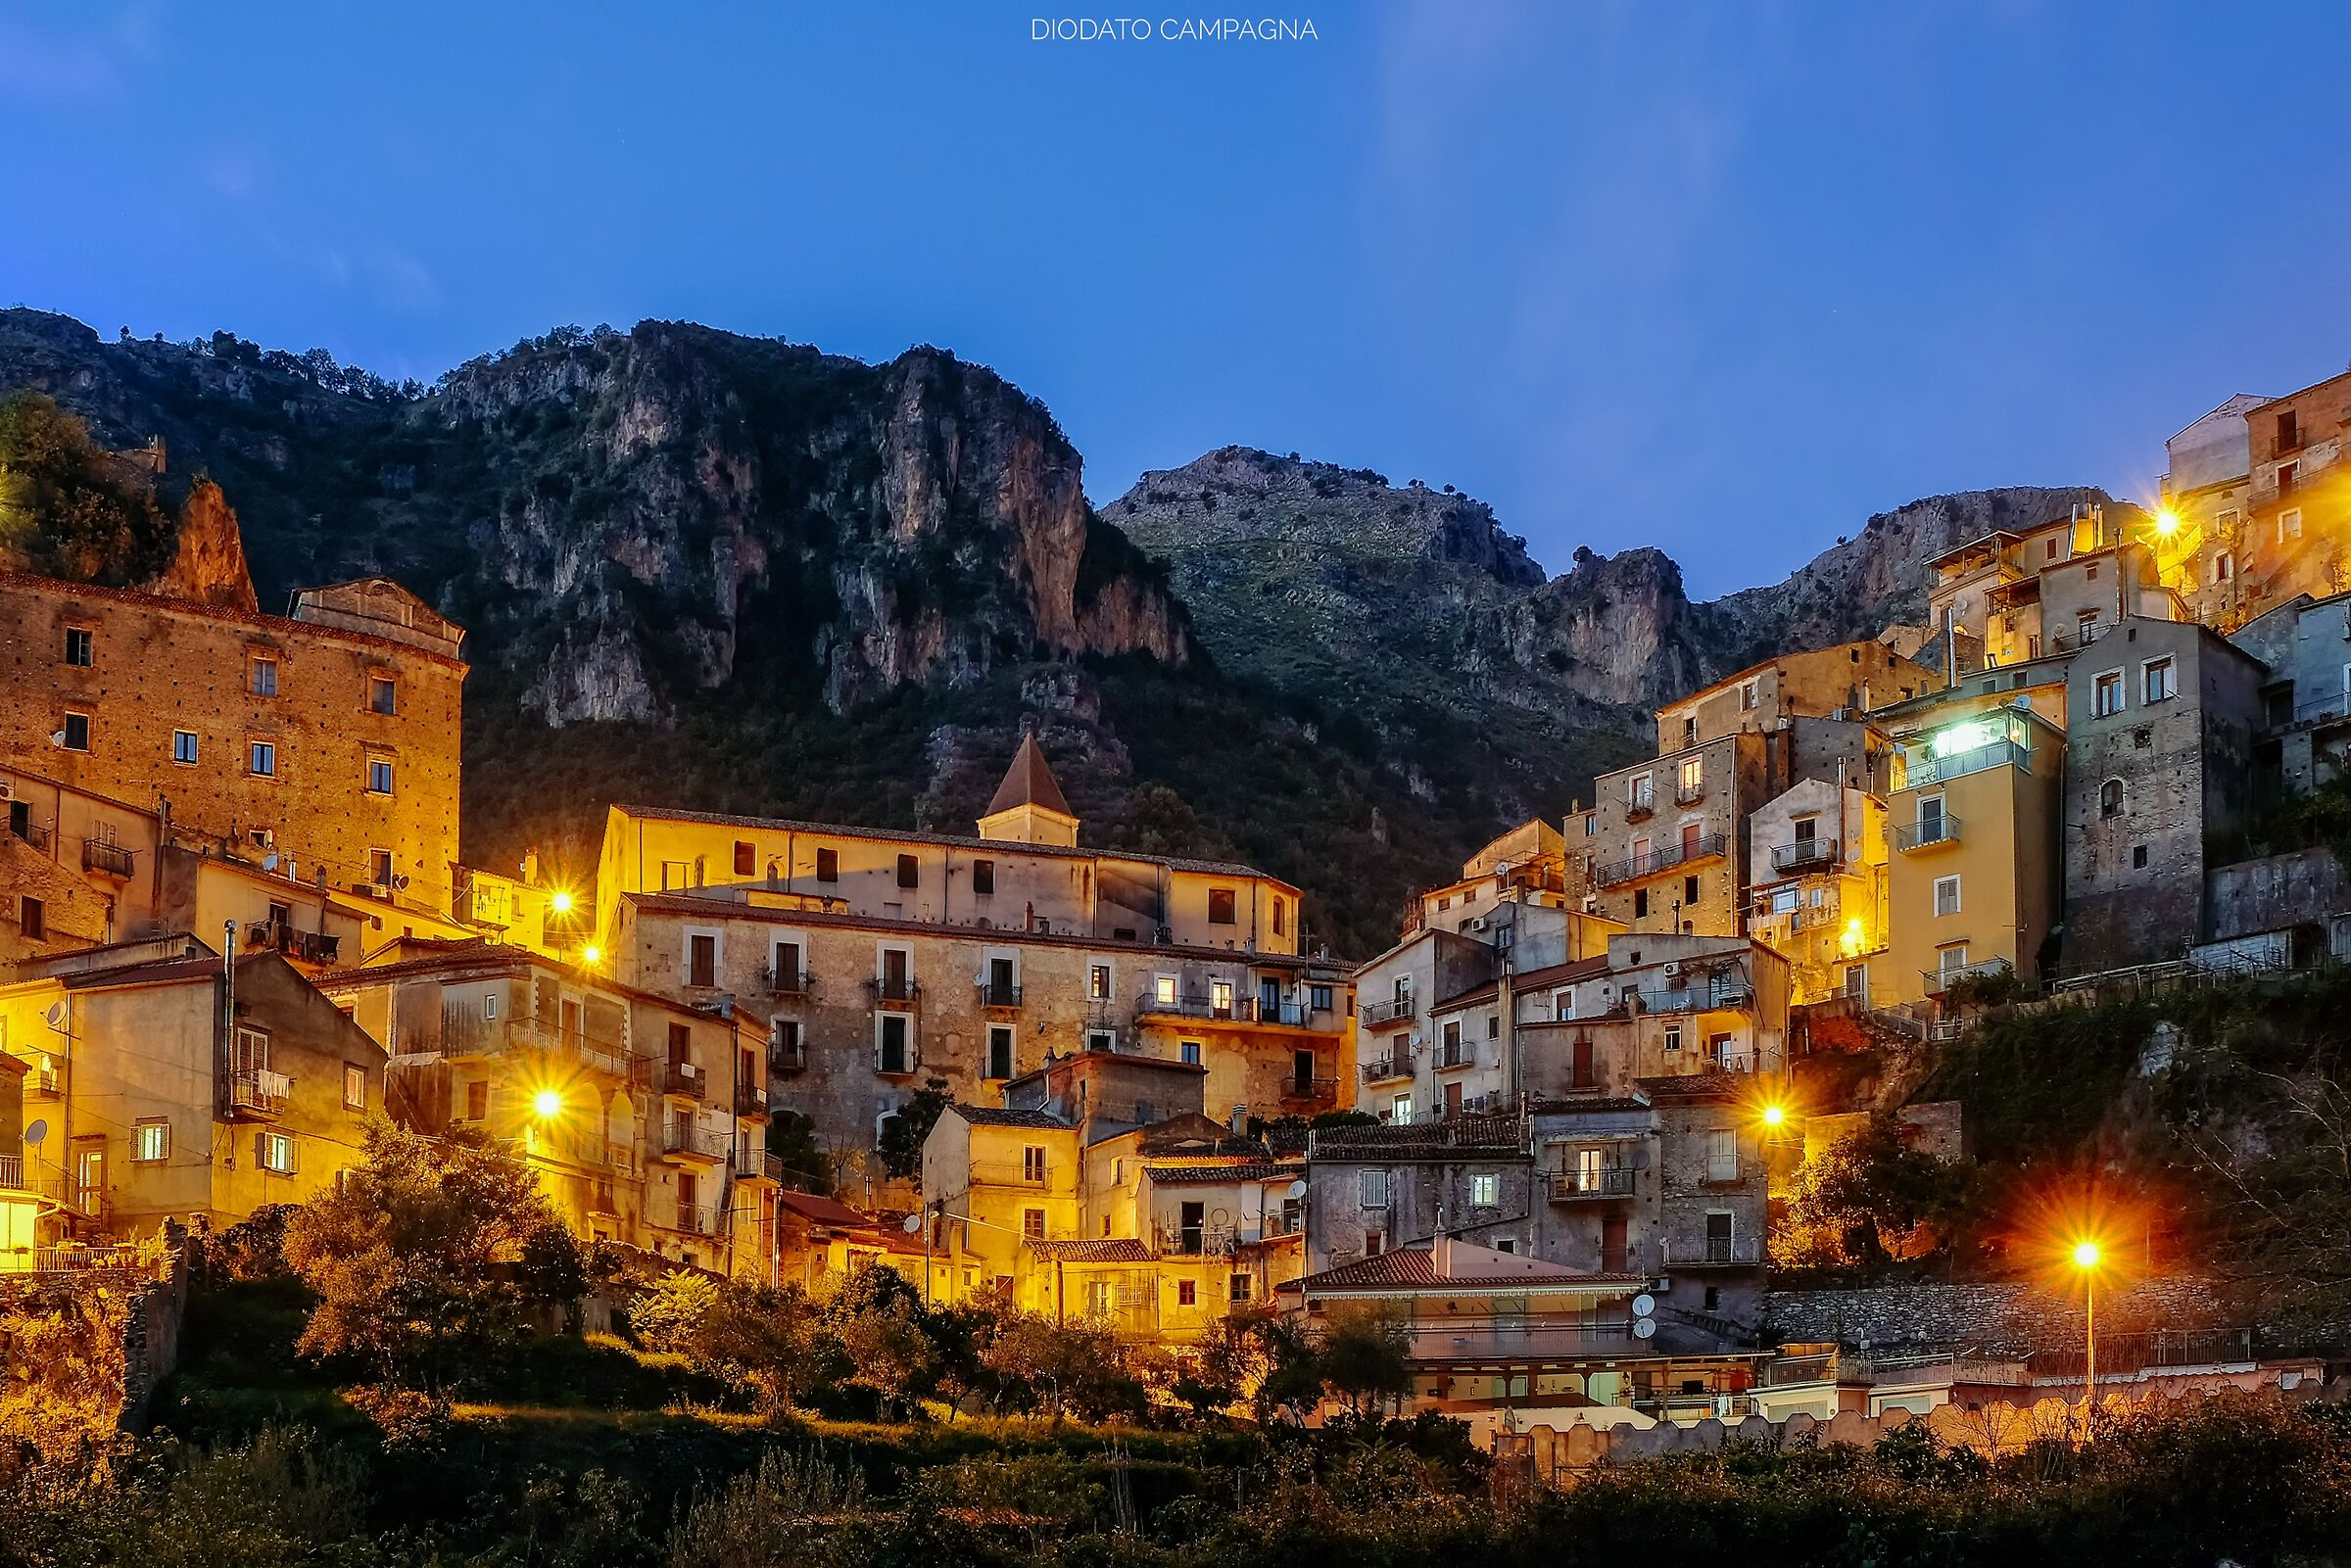 The village of Orsomarso in the evening...